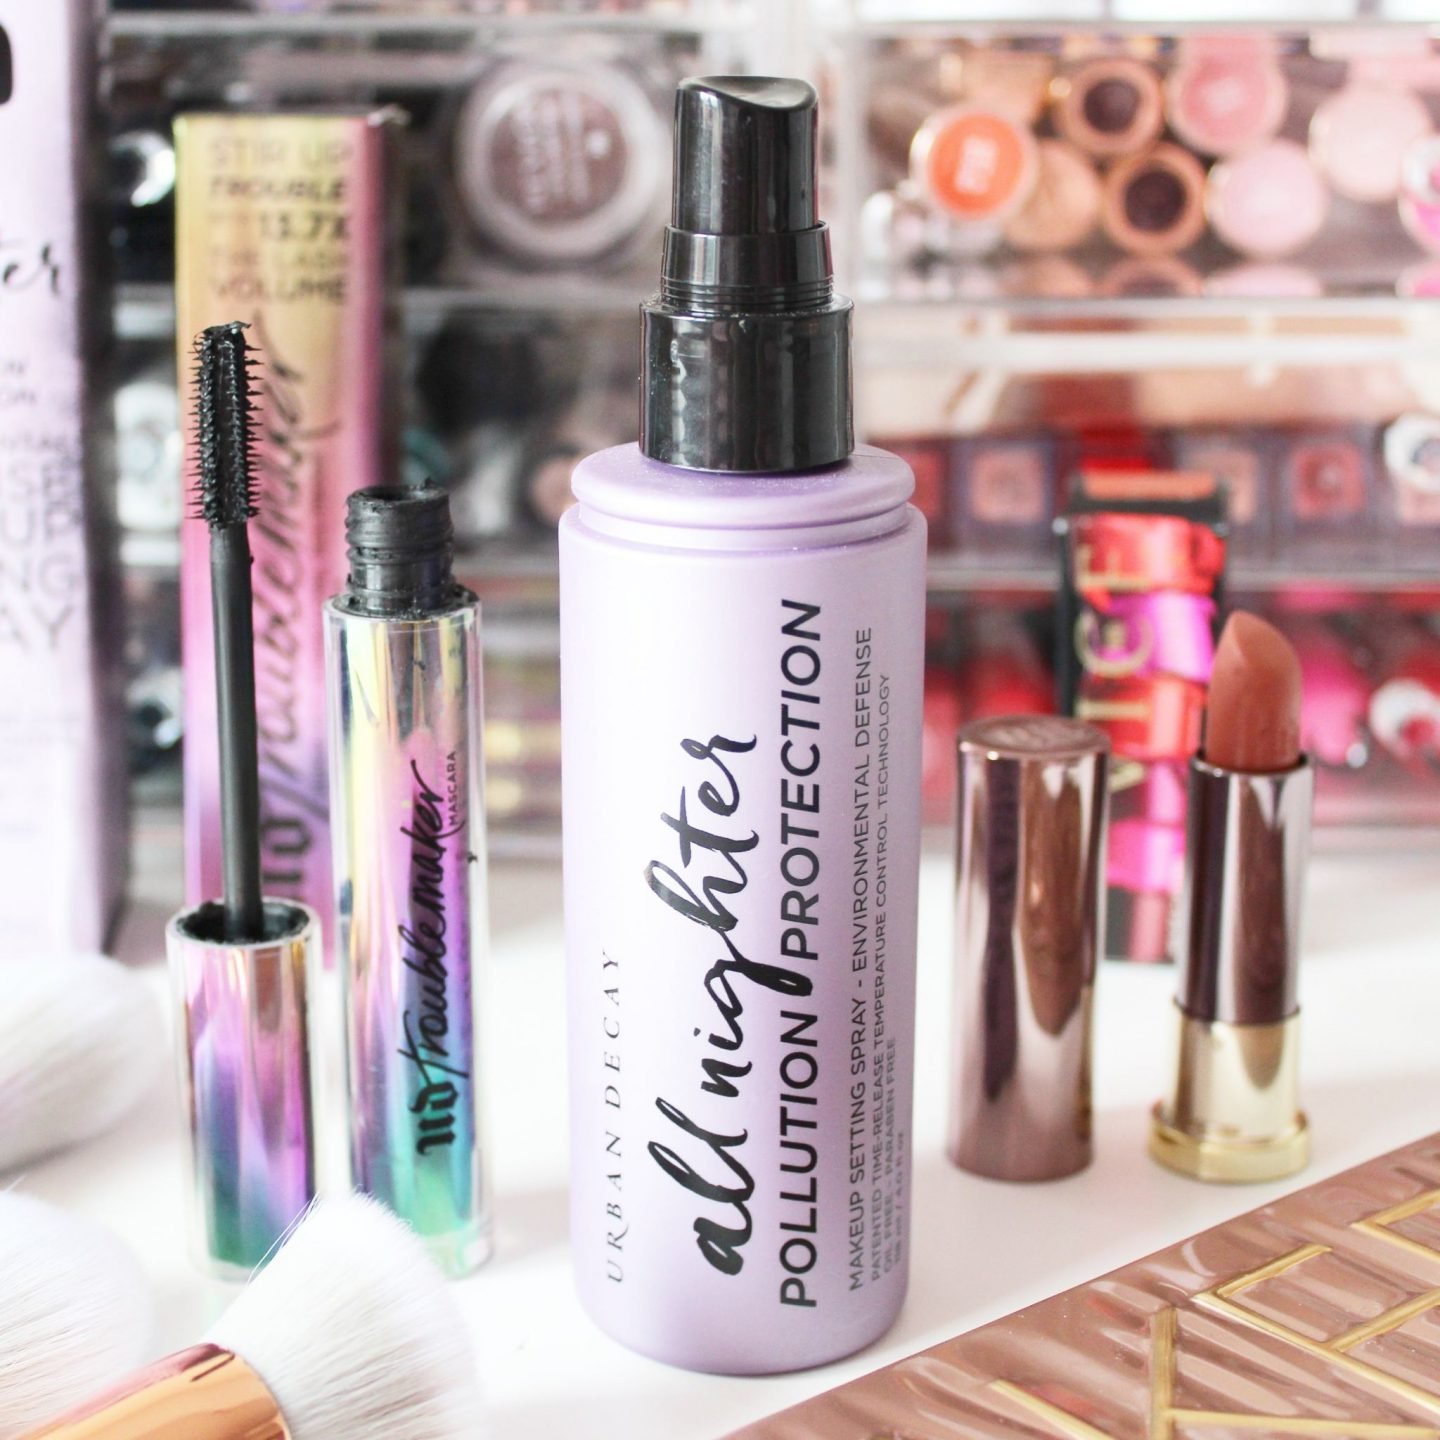 Urban Decay | Beauty With An Edge - All Nighter Setting Spray